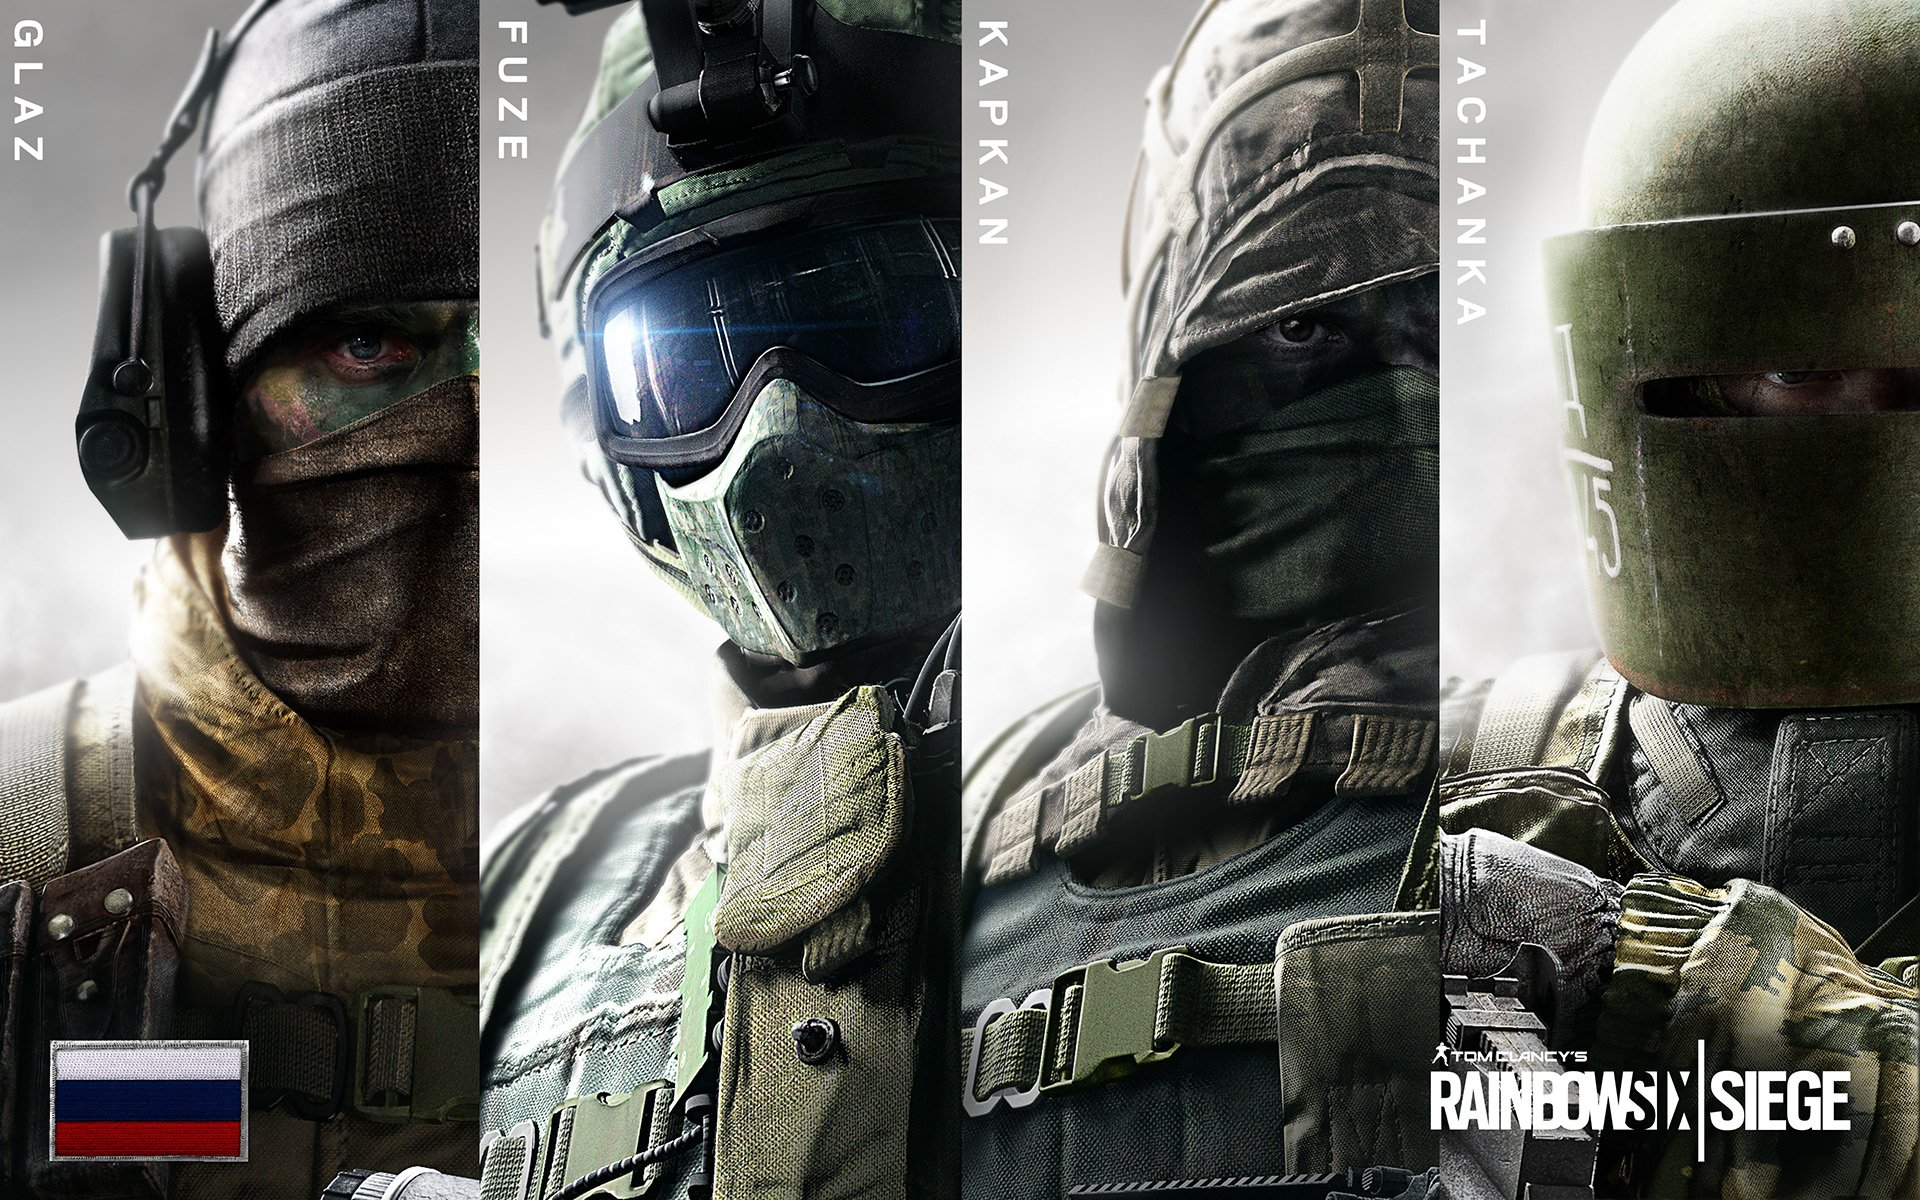 Datorspel - Tom Clancy's Rainbow Six: Siege  Rainbow Six Spetsnaz Special Forces Fuze (Tom Clancy's Rainbow Six: Siege) Glaz (Tom Clancy's Rainbow Six: Siege) Kapkan (Tom Clancy's Rainbow Six: Siege) Tachanka (Tom Clancy's Rainbow Six: Siege) Bakgrund